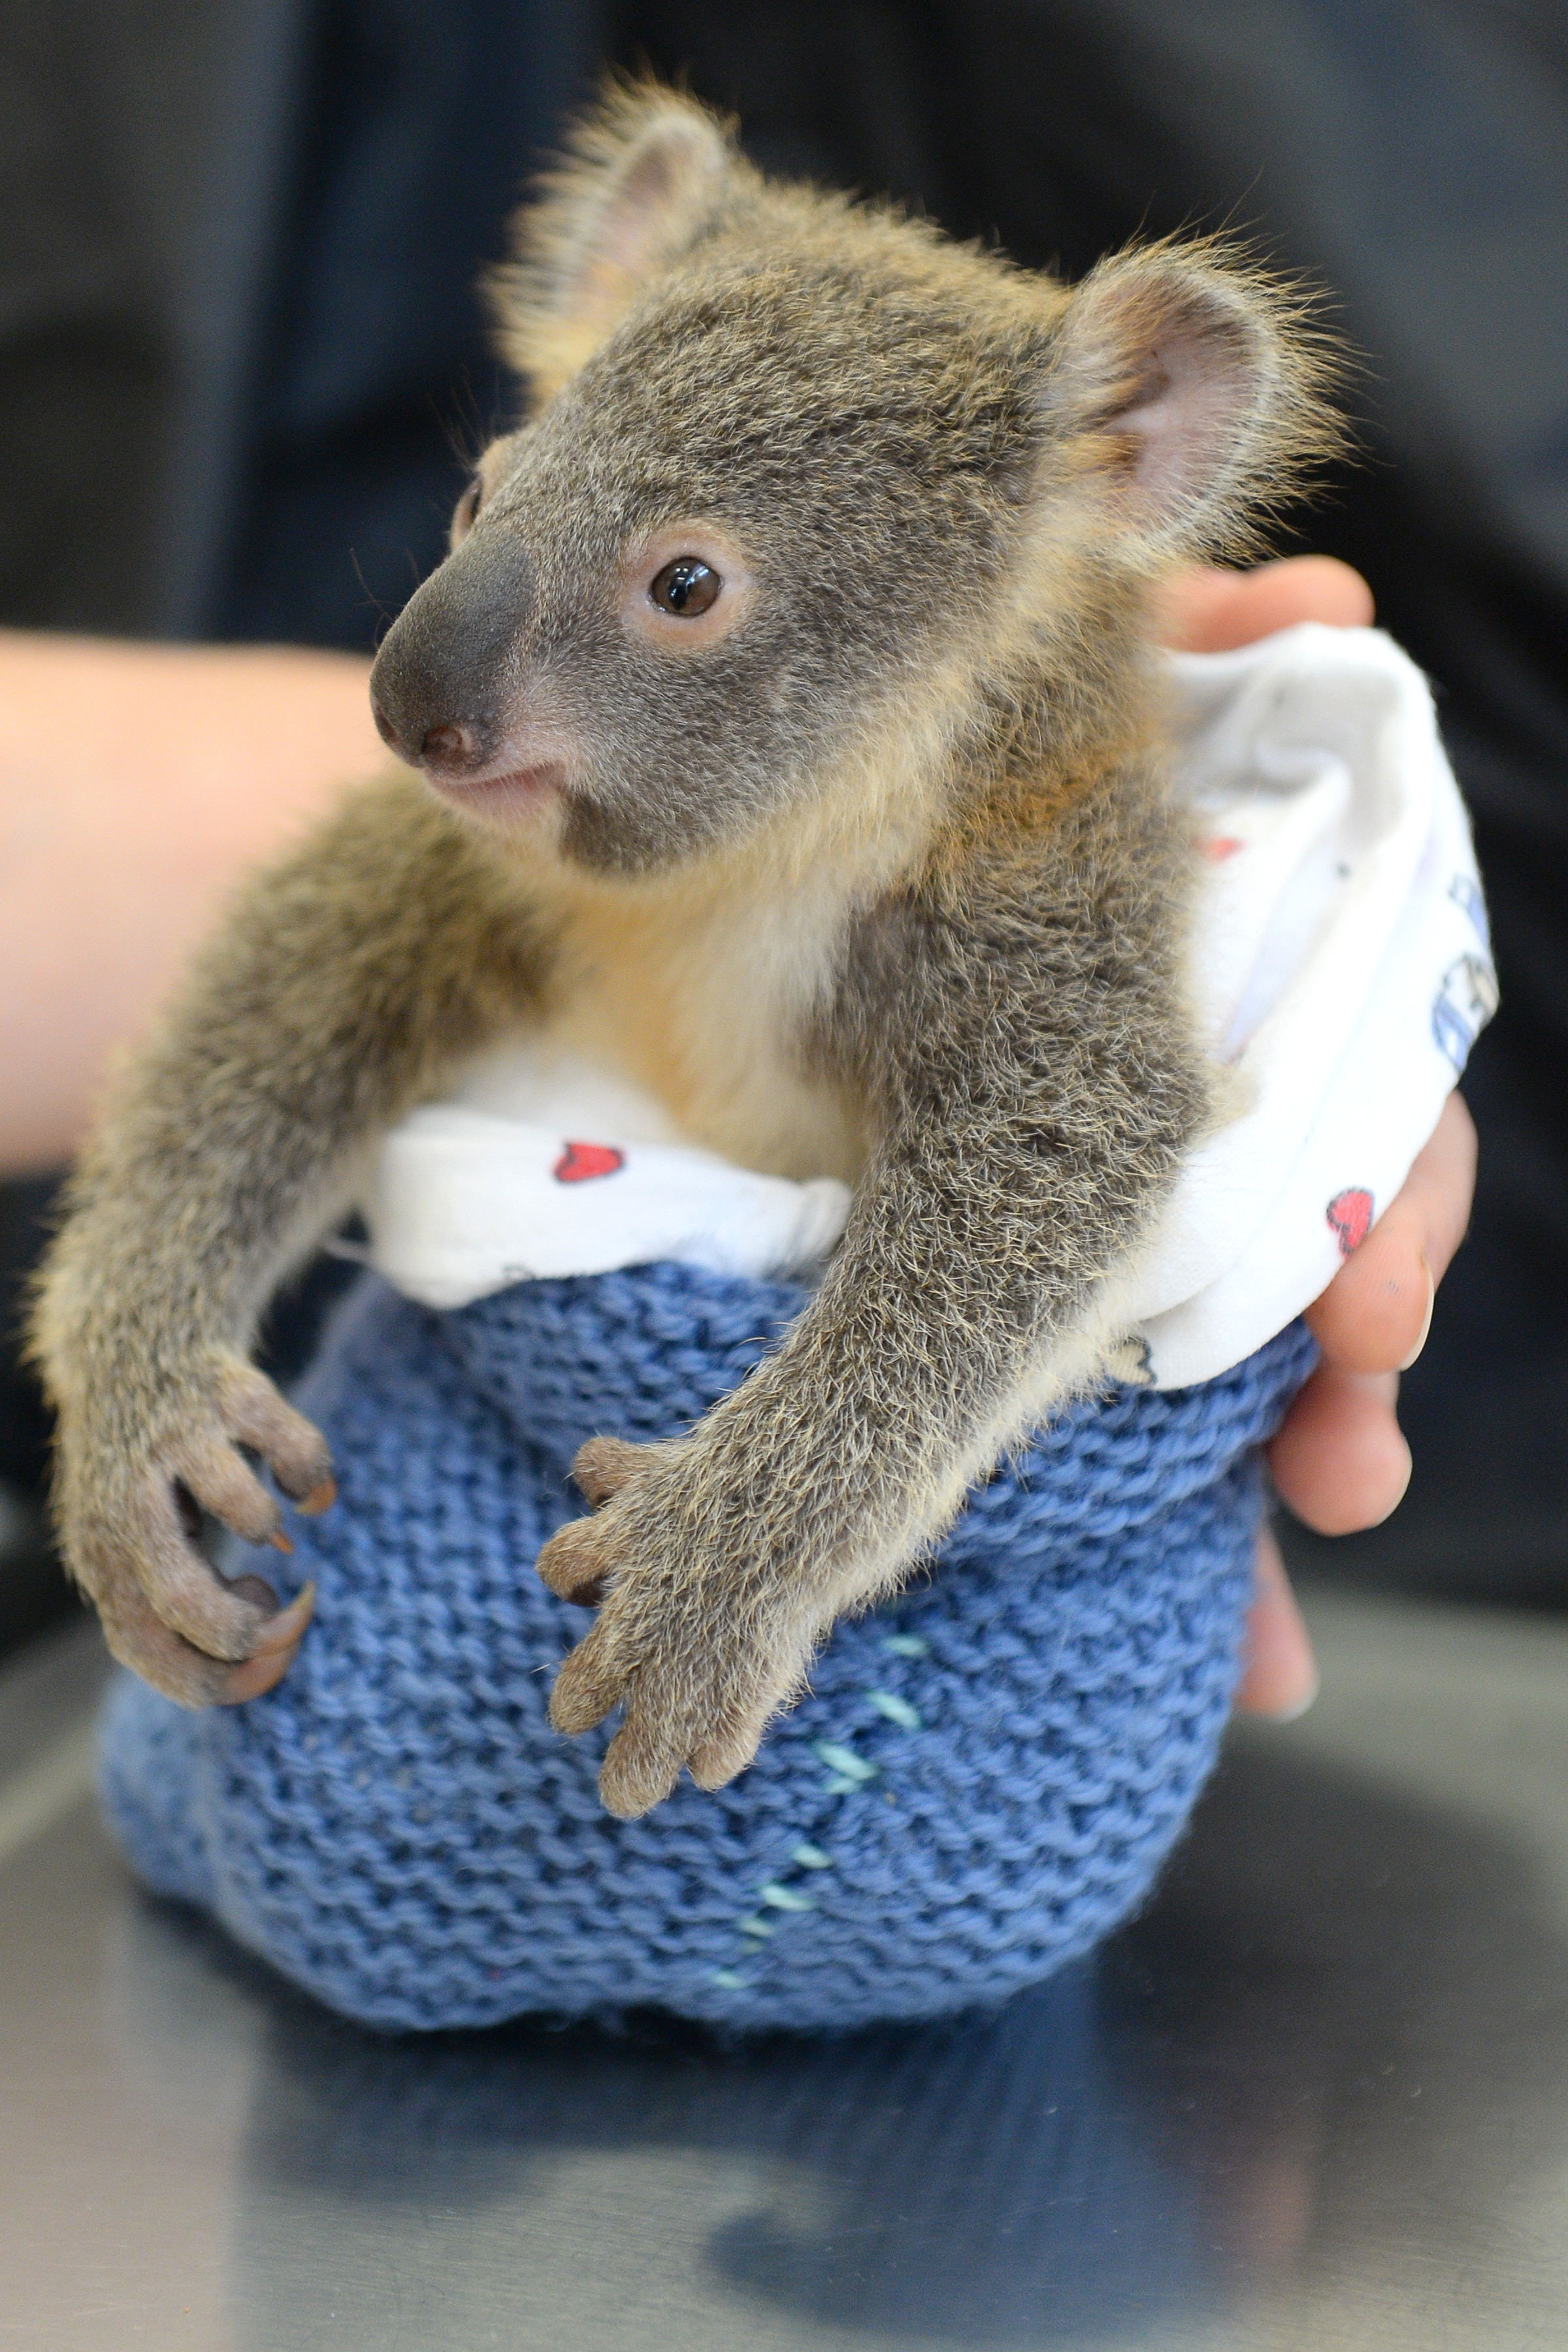 Baby Koala Didn't Leave His Mother's Side In The Hospital ...